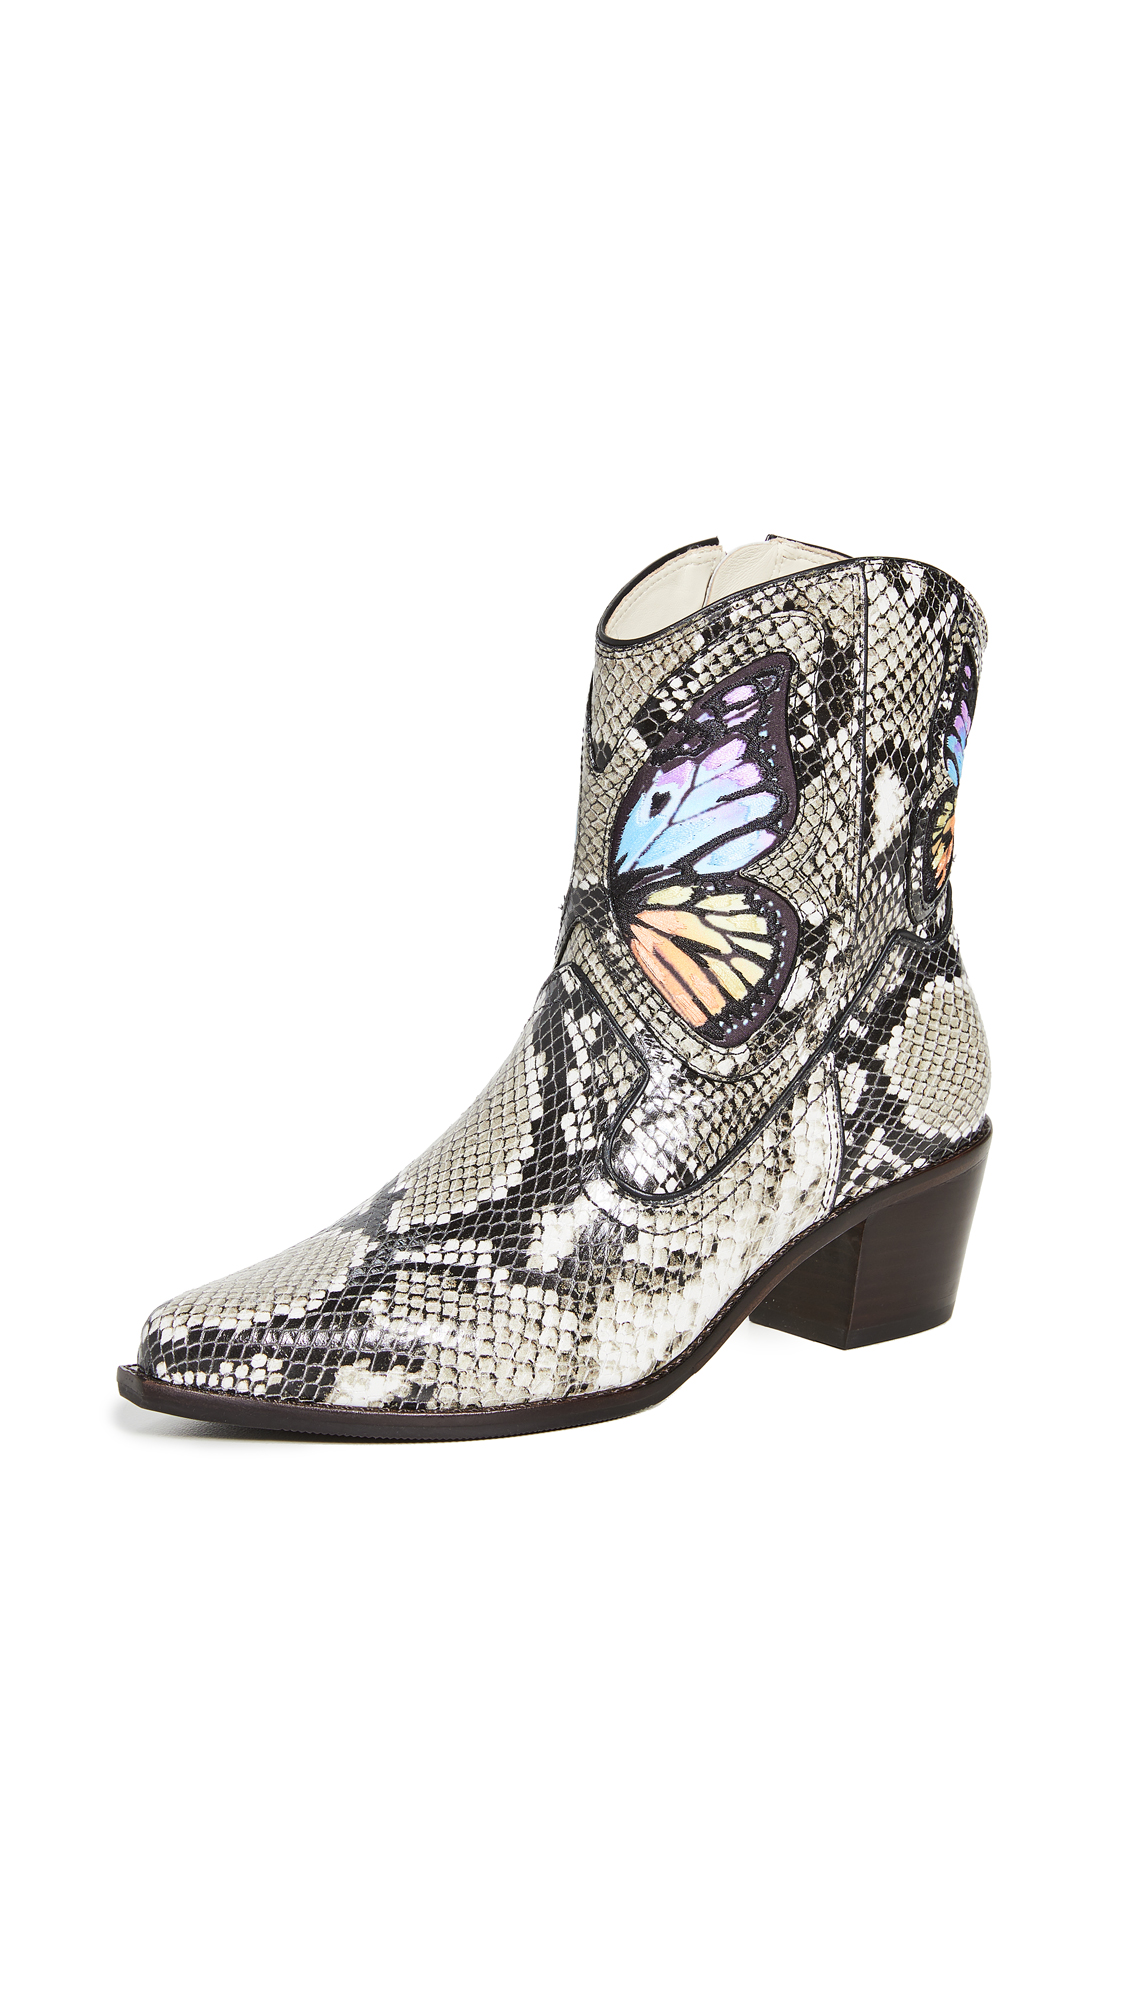 Sophia Webster Shelby Cowboy Boots - 65% Off Sale